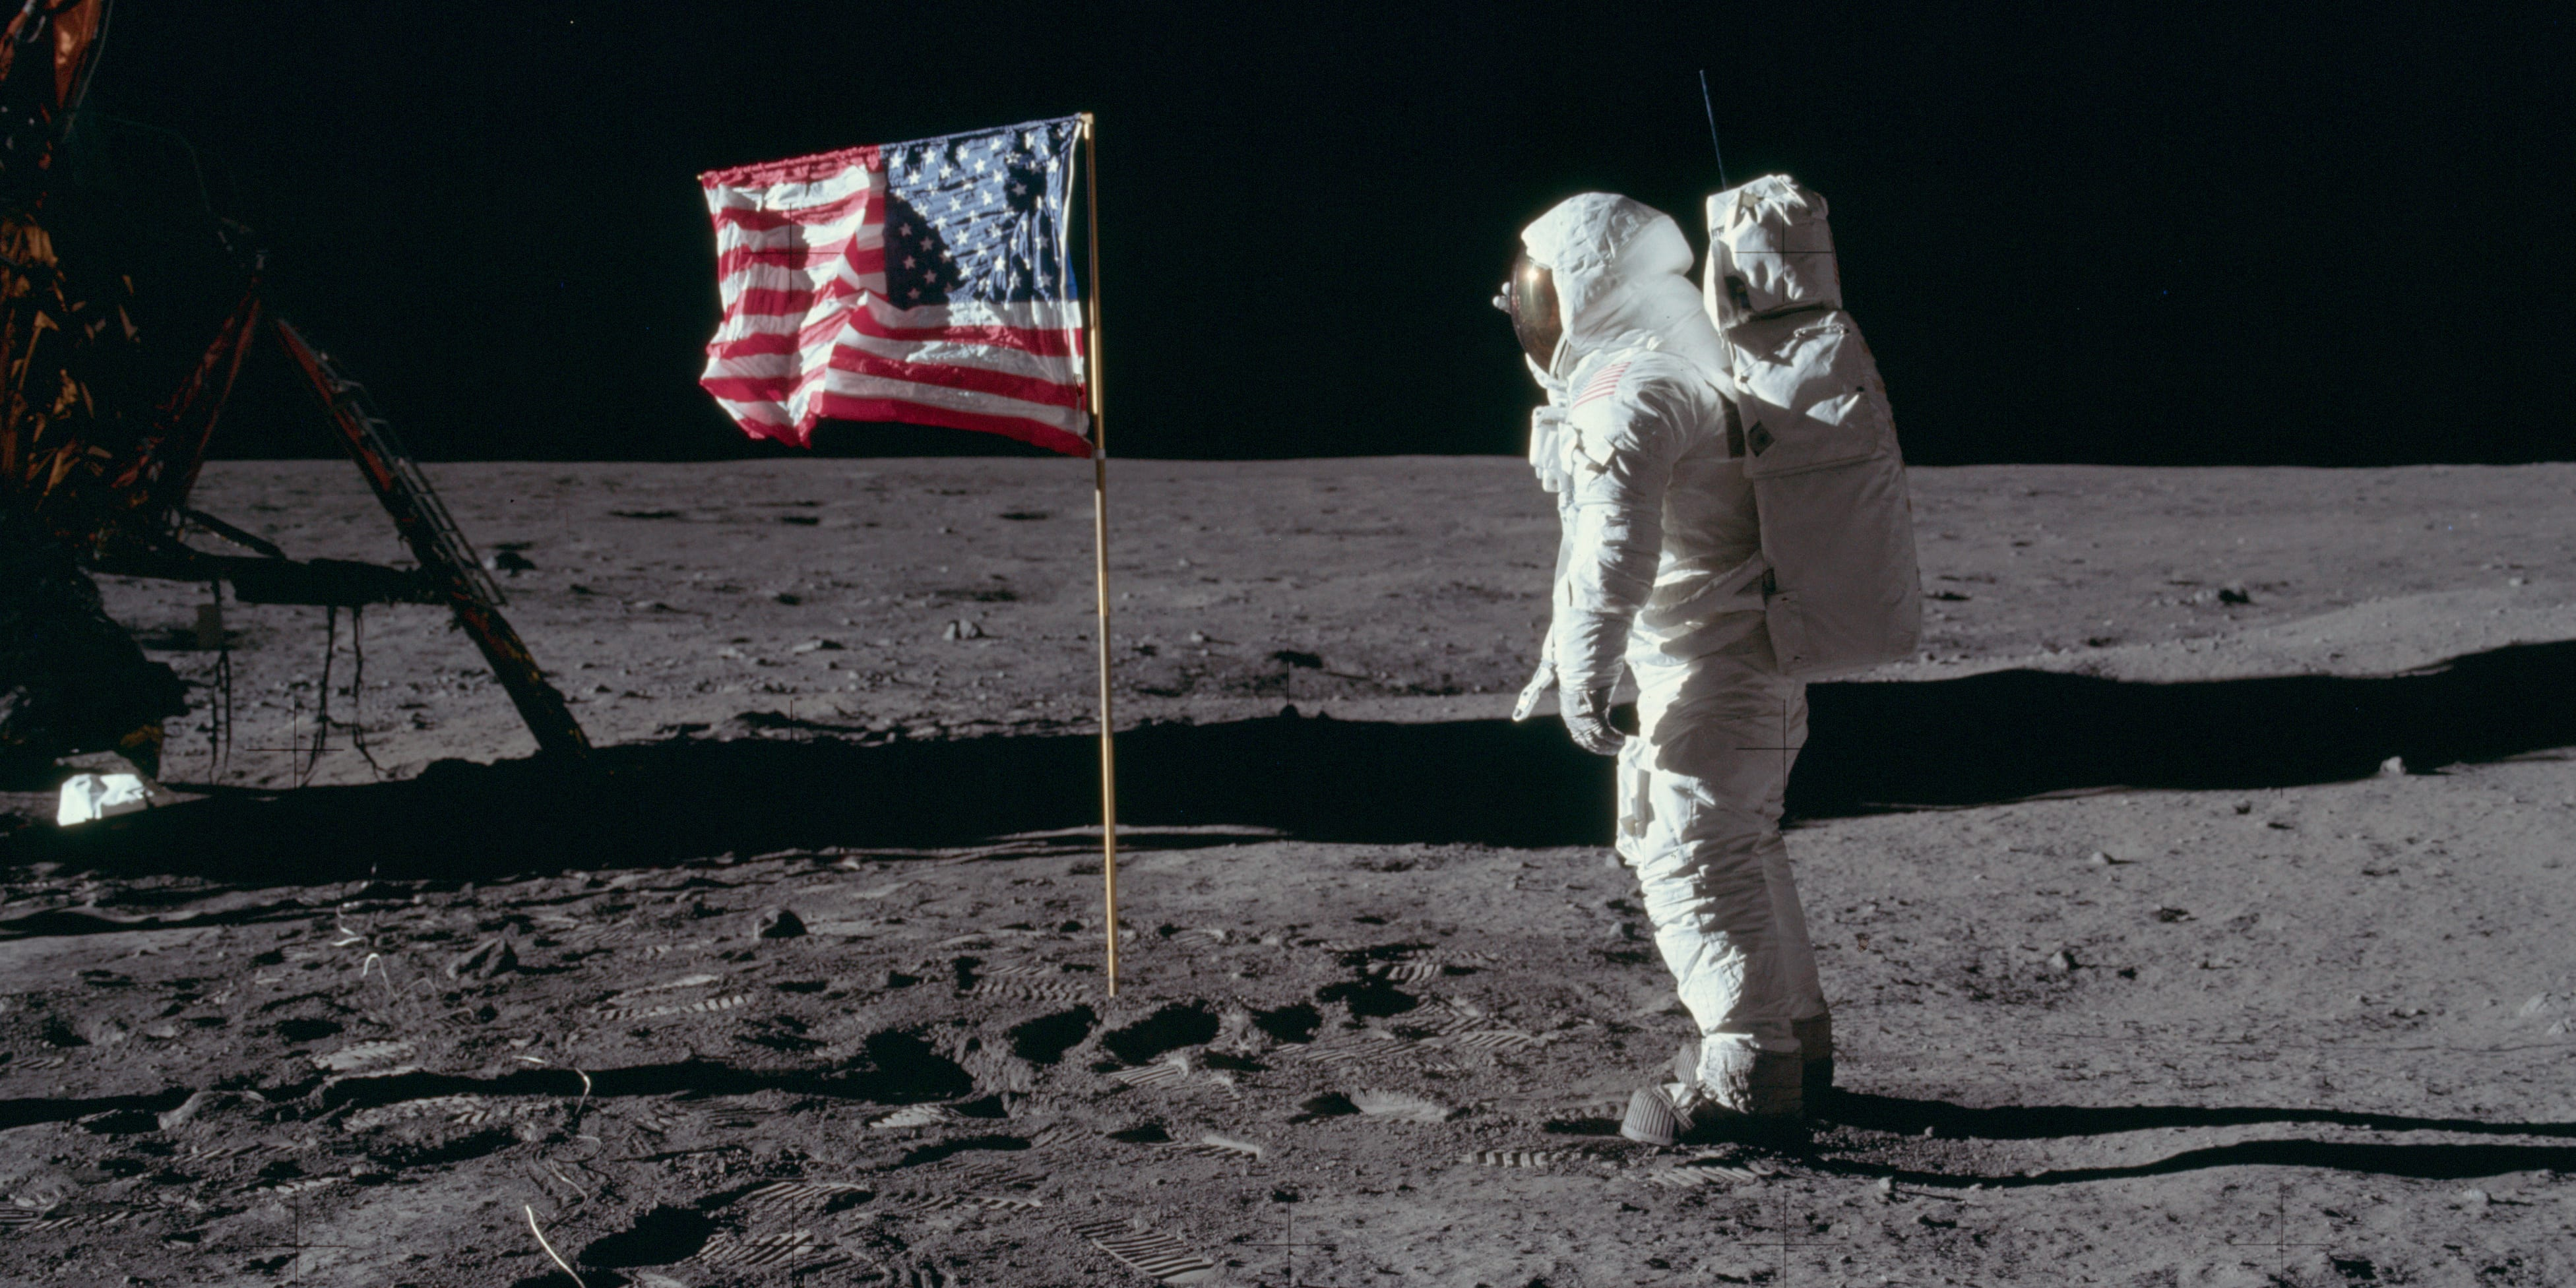 The Big Fix That Launched Apollo 11 to the Moon